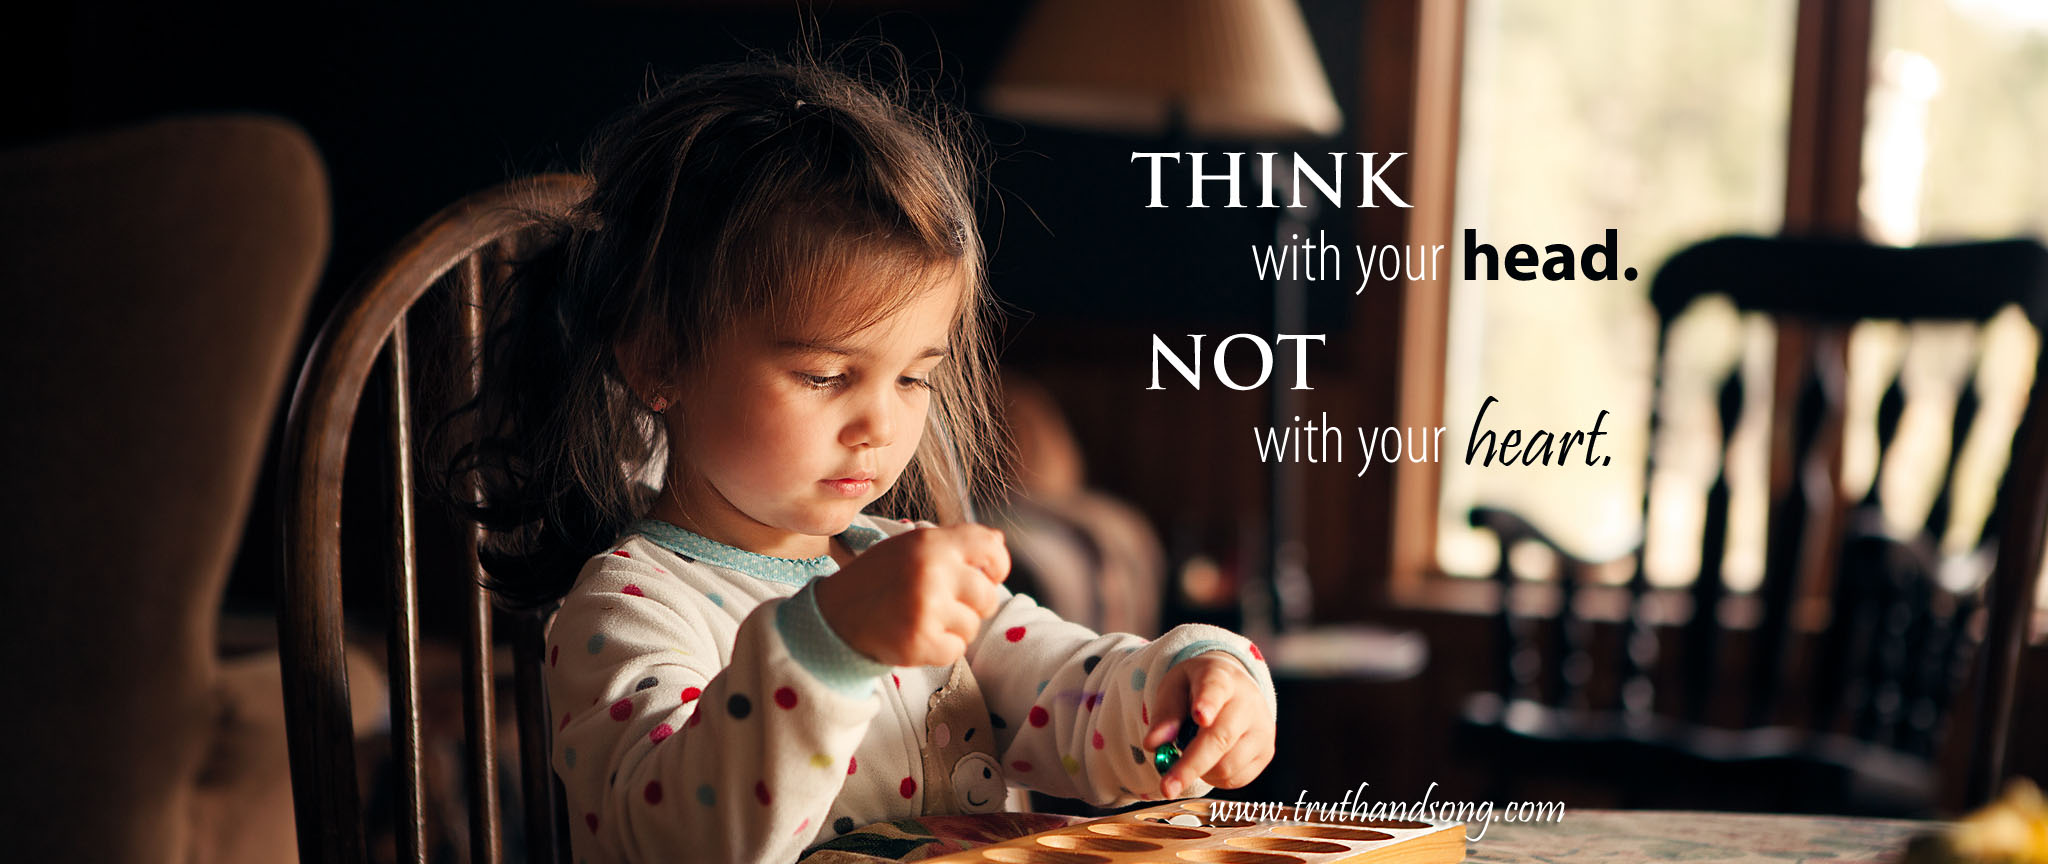 Think with your head; not with your heart. Life Lessons - TruthandSong